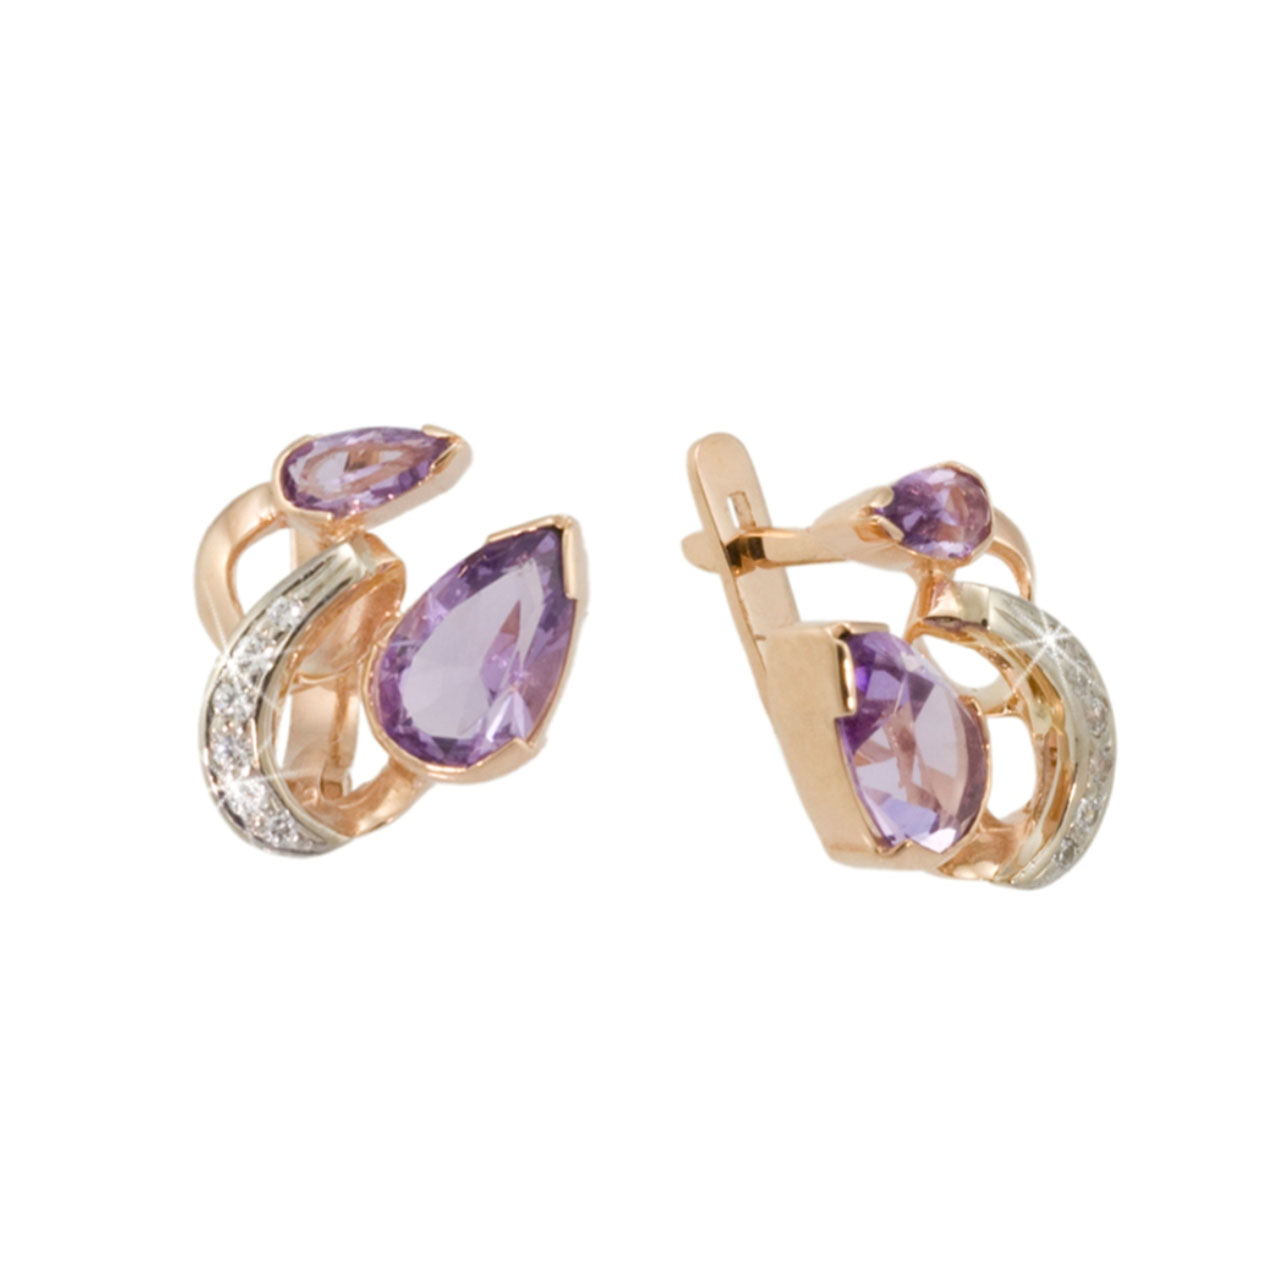 Pear-shaped Amethyst Gold Earrings